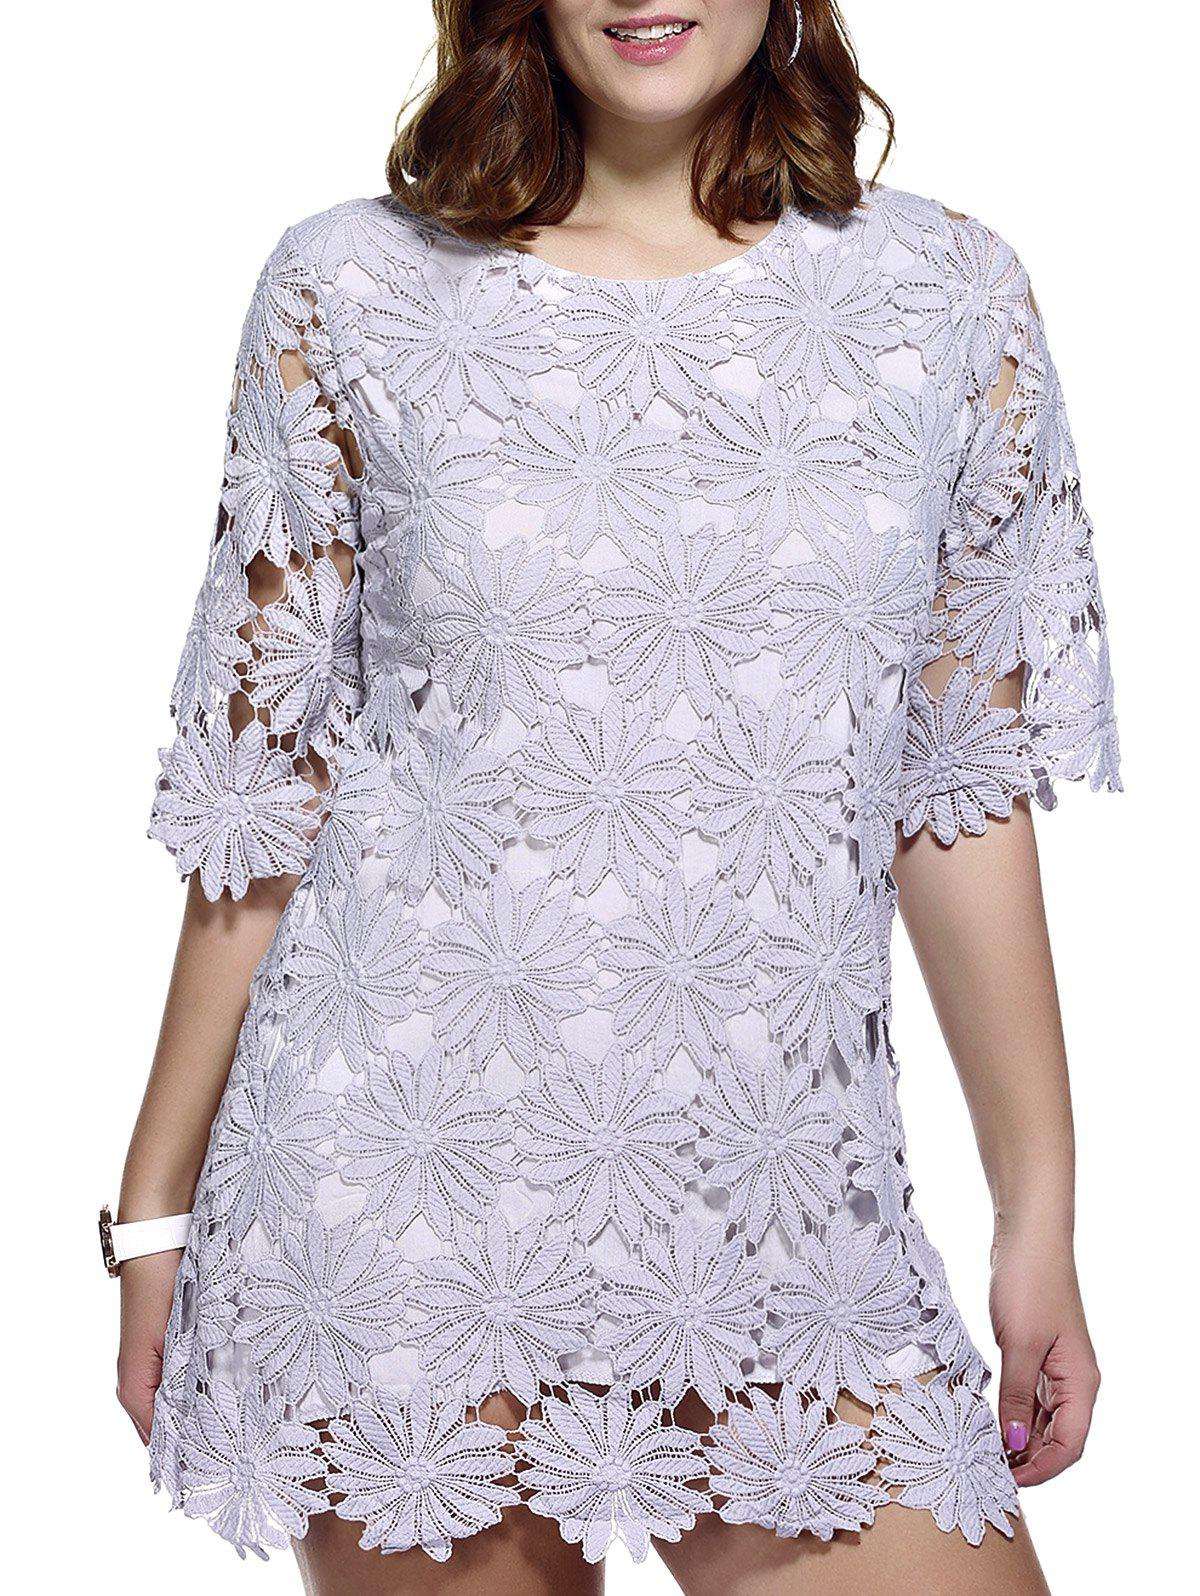 Creative Patterns For Lace Dress Wholesale Sexy Casual Midi Dresses For Women